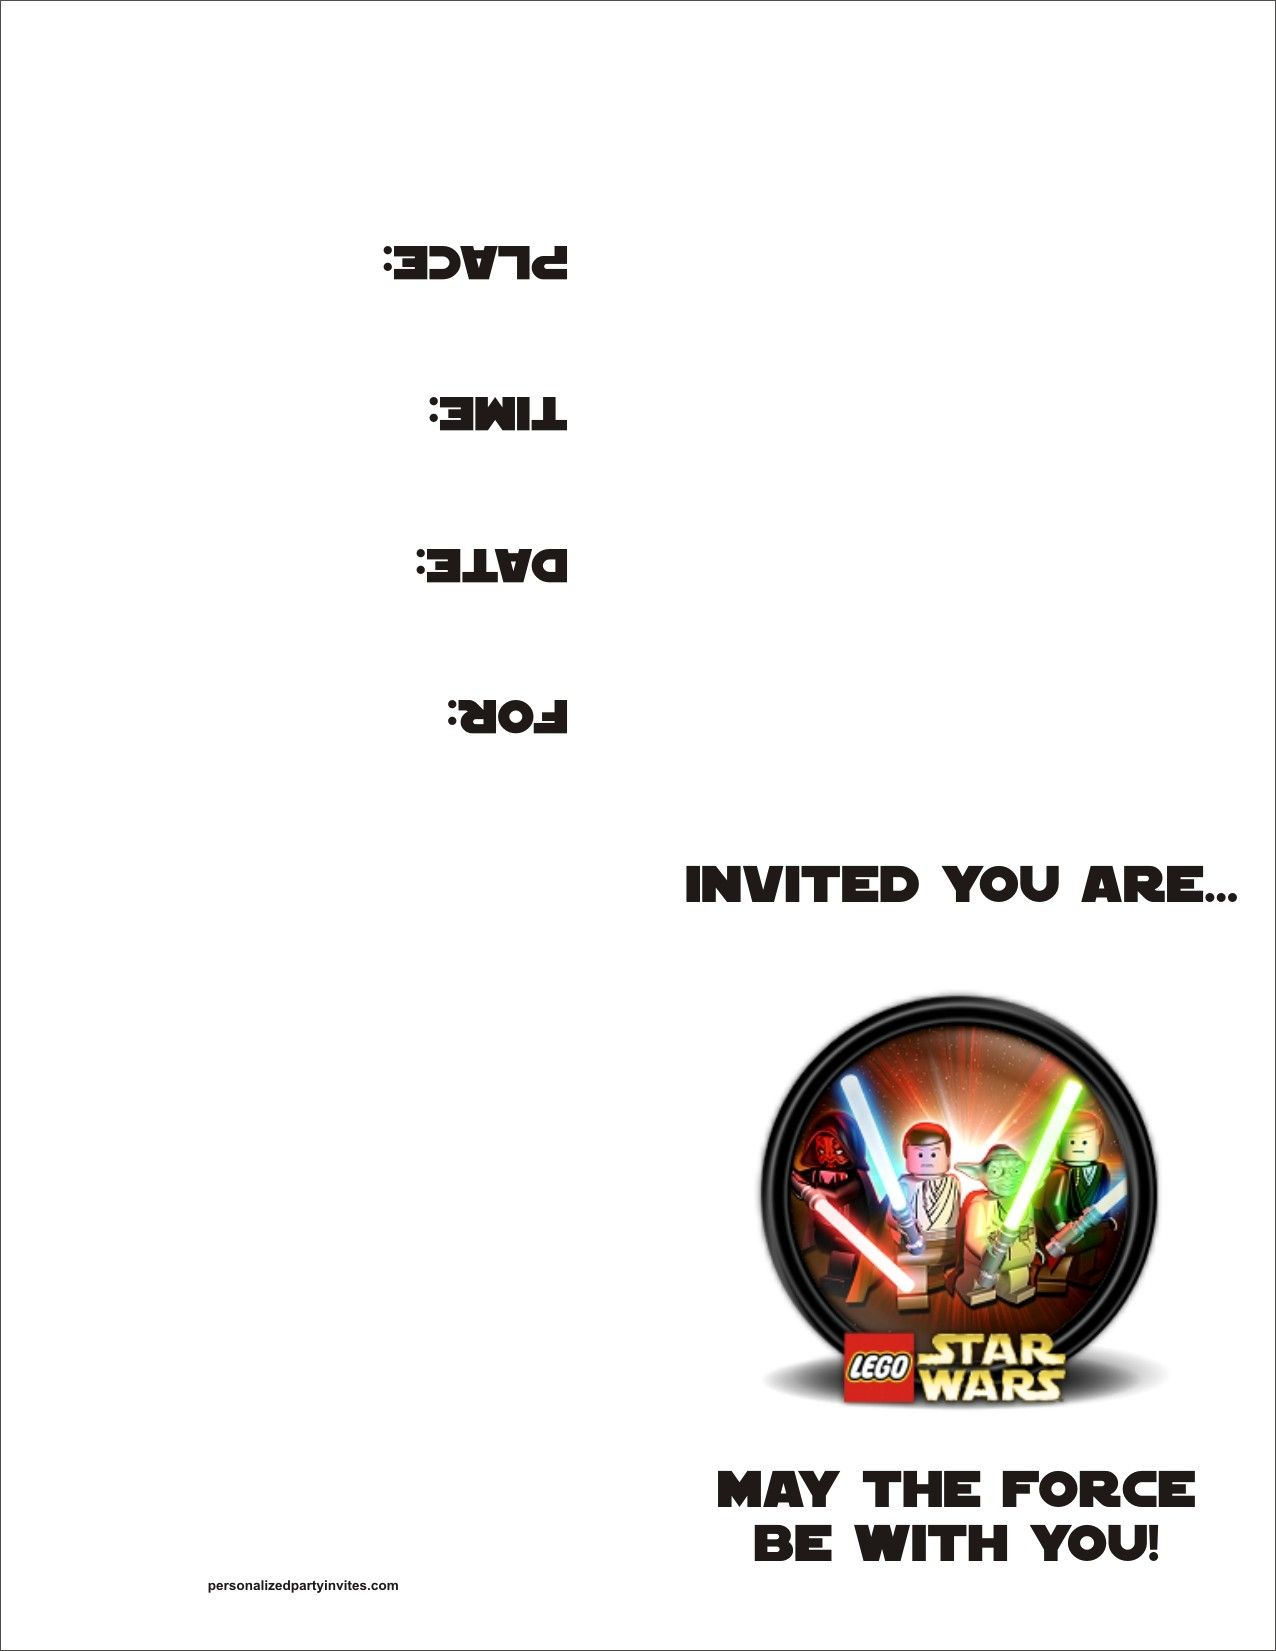 star wars birthday party invitations printable ; c9eee80f5a95679e4a9ac4536285dcd2